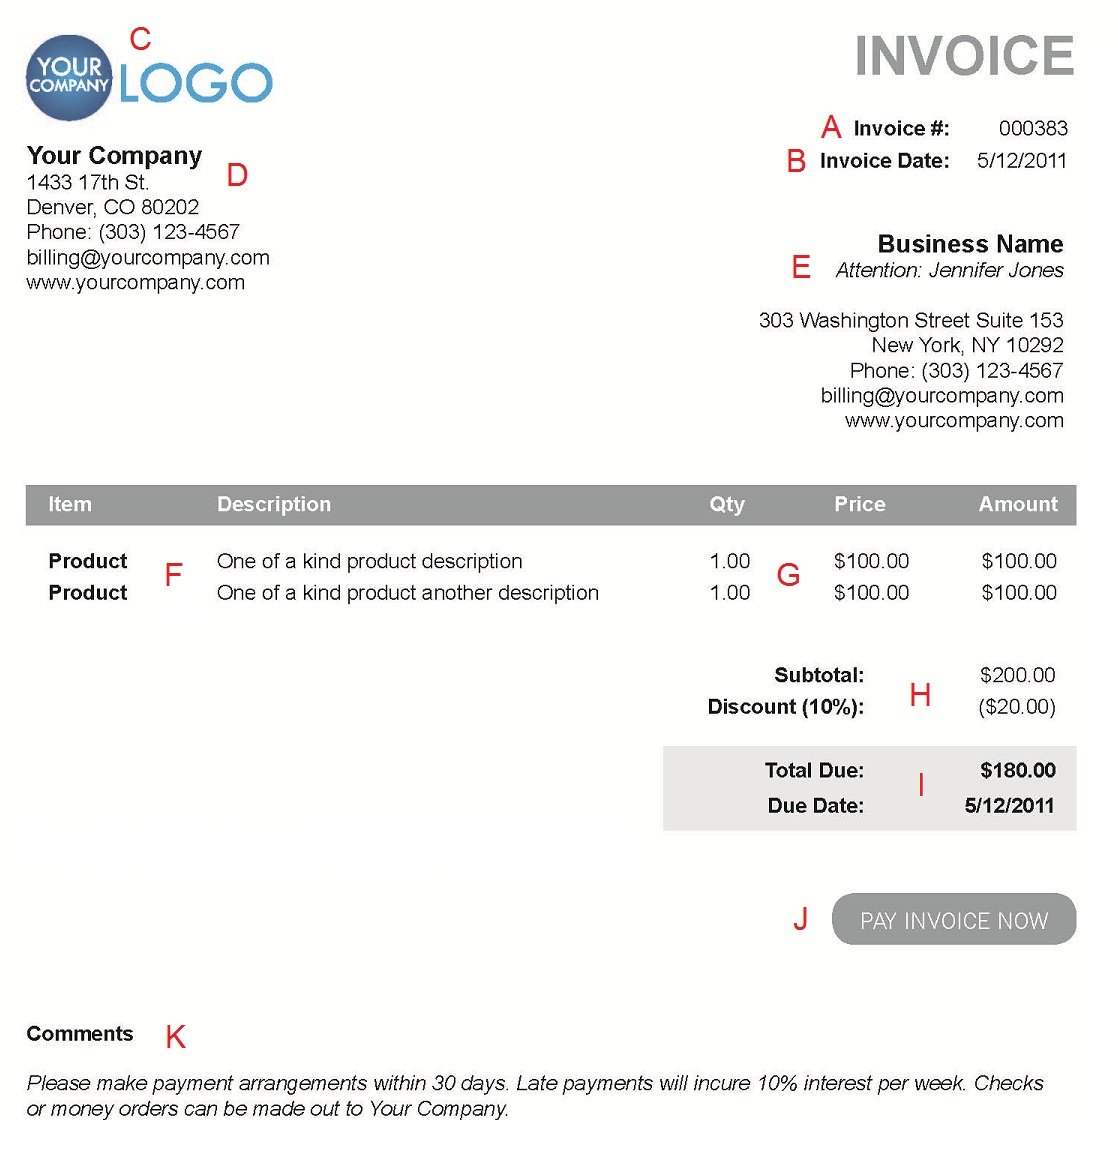 Coolmathgamesus  Picturesque The  Different Sections Of An Electronic Payment Invoice With Handsome A  With Attractive Download Excel Invoice Template Also Nissan Leaf Invoice Price In Addition Dummy Invoice Template And Bmw X Invoice Price As Well As Examples Of Invoices For Services Additionally Invoice In Paypal From Paysimplecom With Coolmathgamesus  Handsome The  Different Sections Of An Electronic Payment Invoice With Attractive A  And Picturesque Download Excel Invoice Template Also Nissan Leaf Invoice Price In Addition Dummy Invoice Template From Paysimplecom